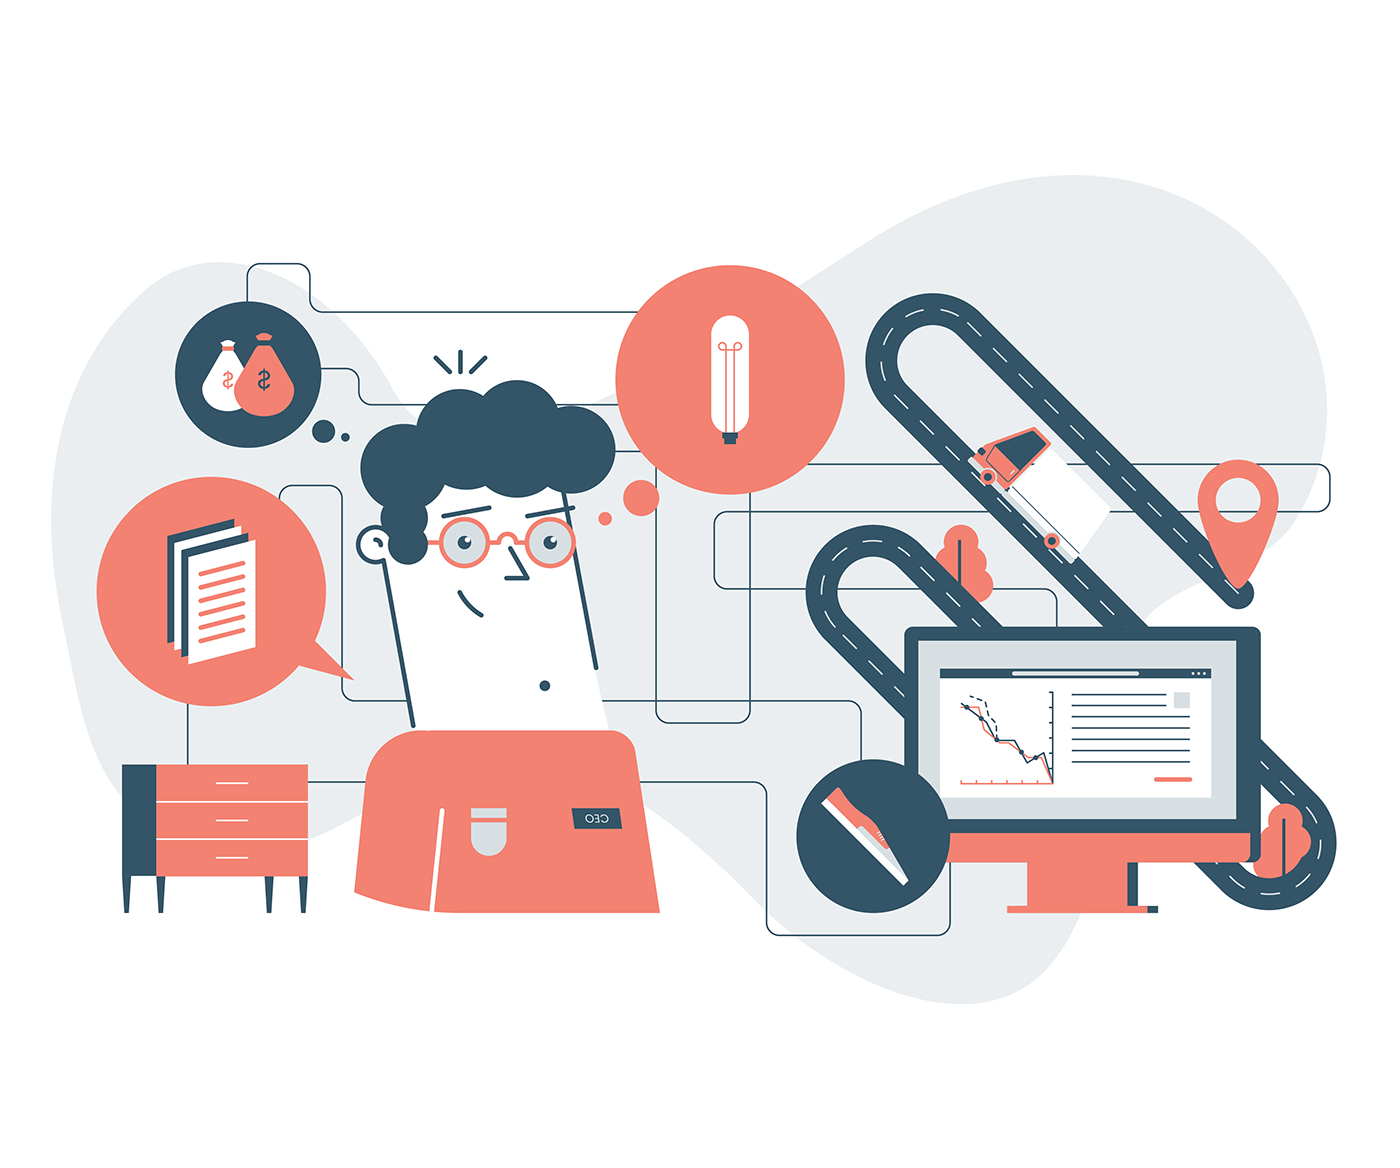 illustrations branding  artificial intelligence ai machine learning brochure icons landing page